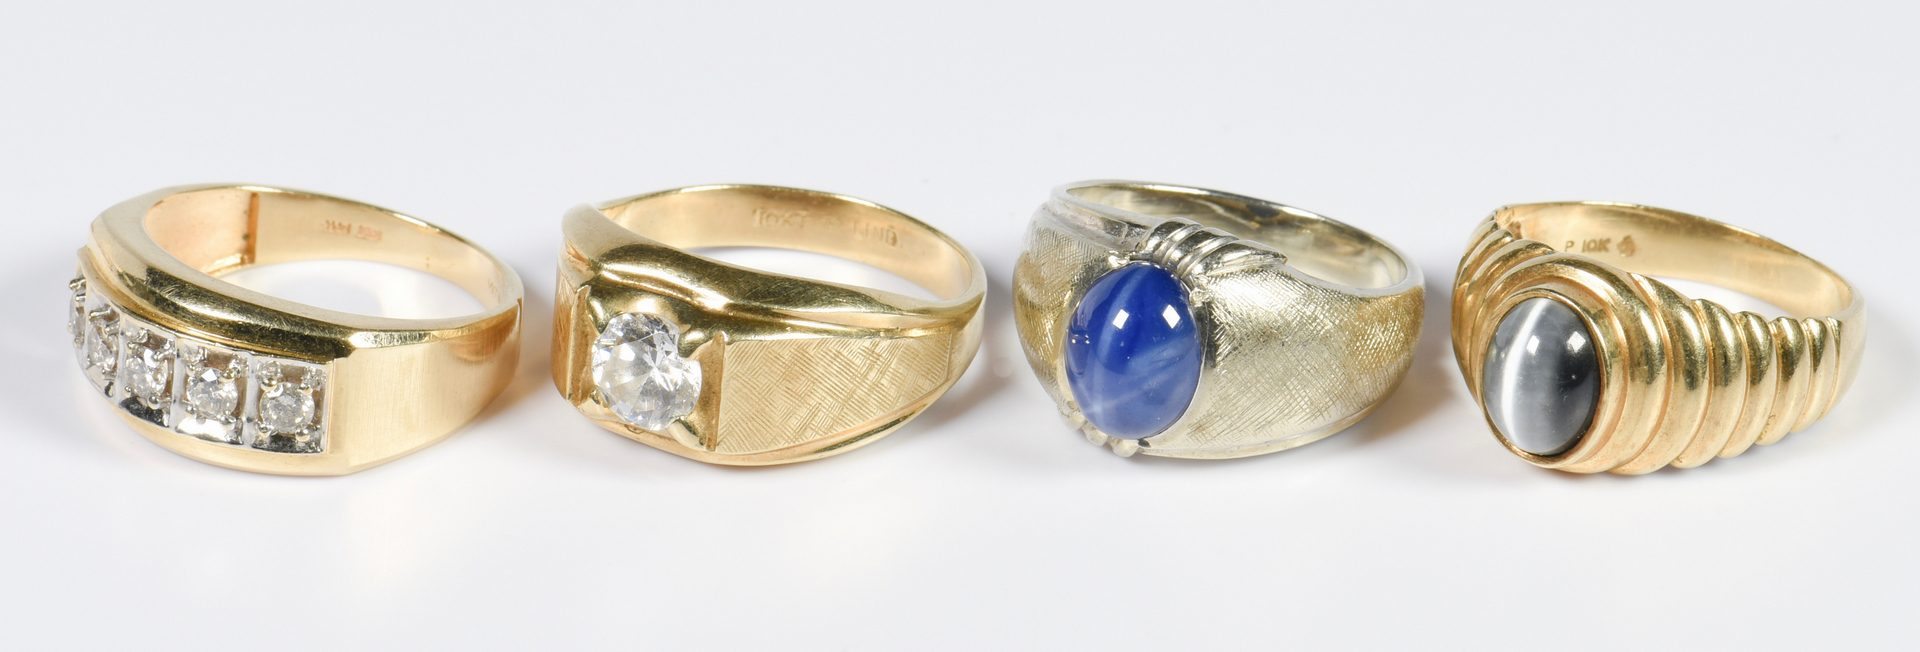 Lot 963: Gents Gold Rings and Cufflinks, 6 items